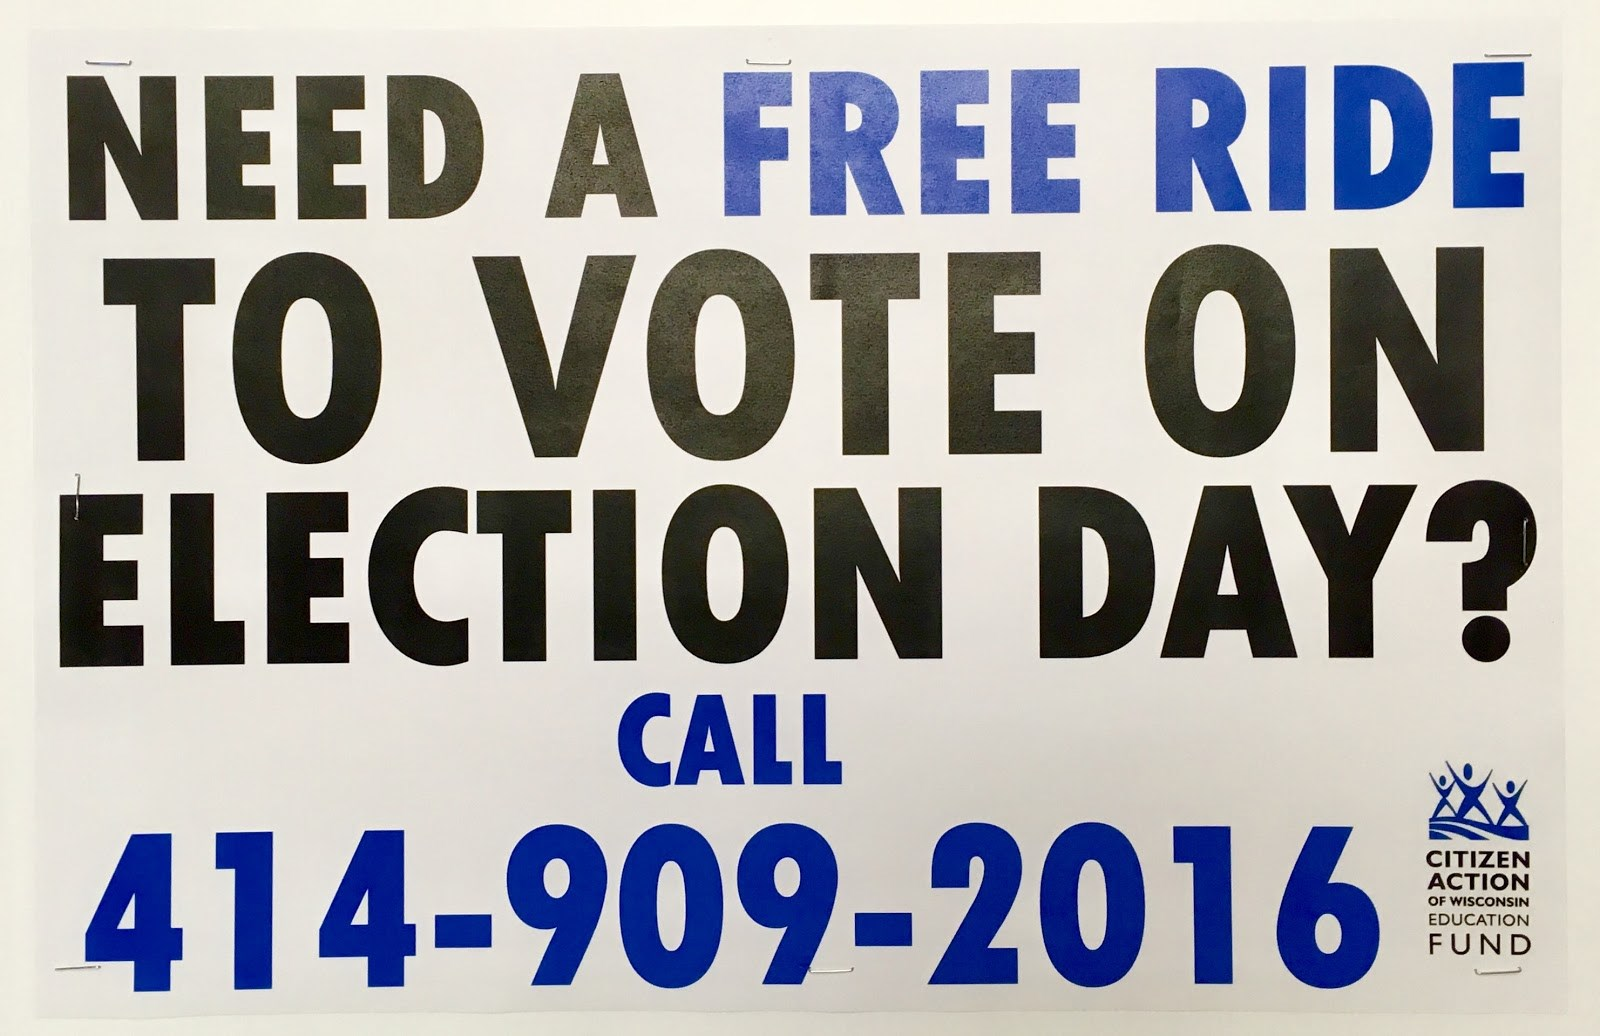 Call (414) 909-2016 for a free ride from 7 am until 8 pm on Election Day